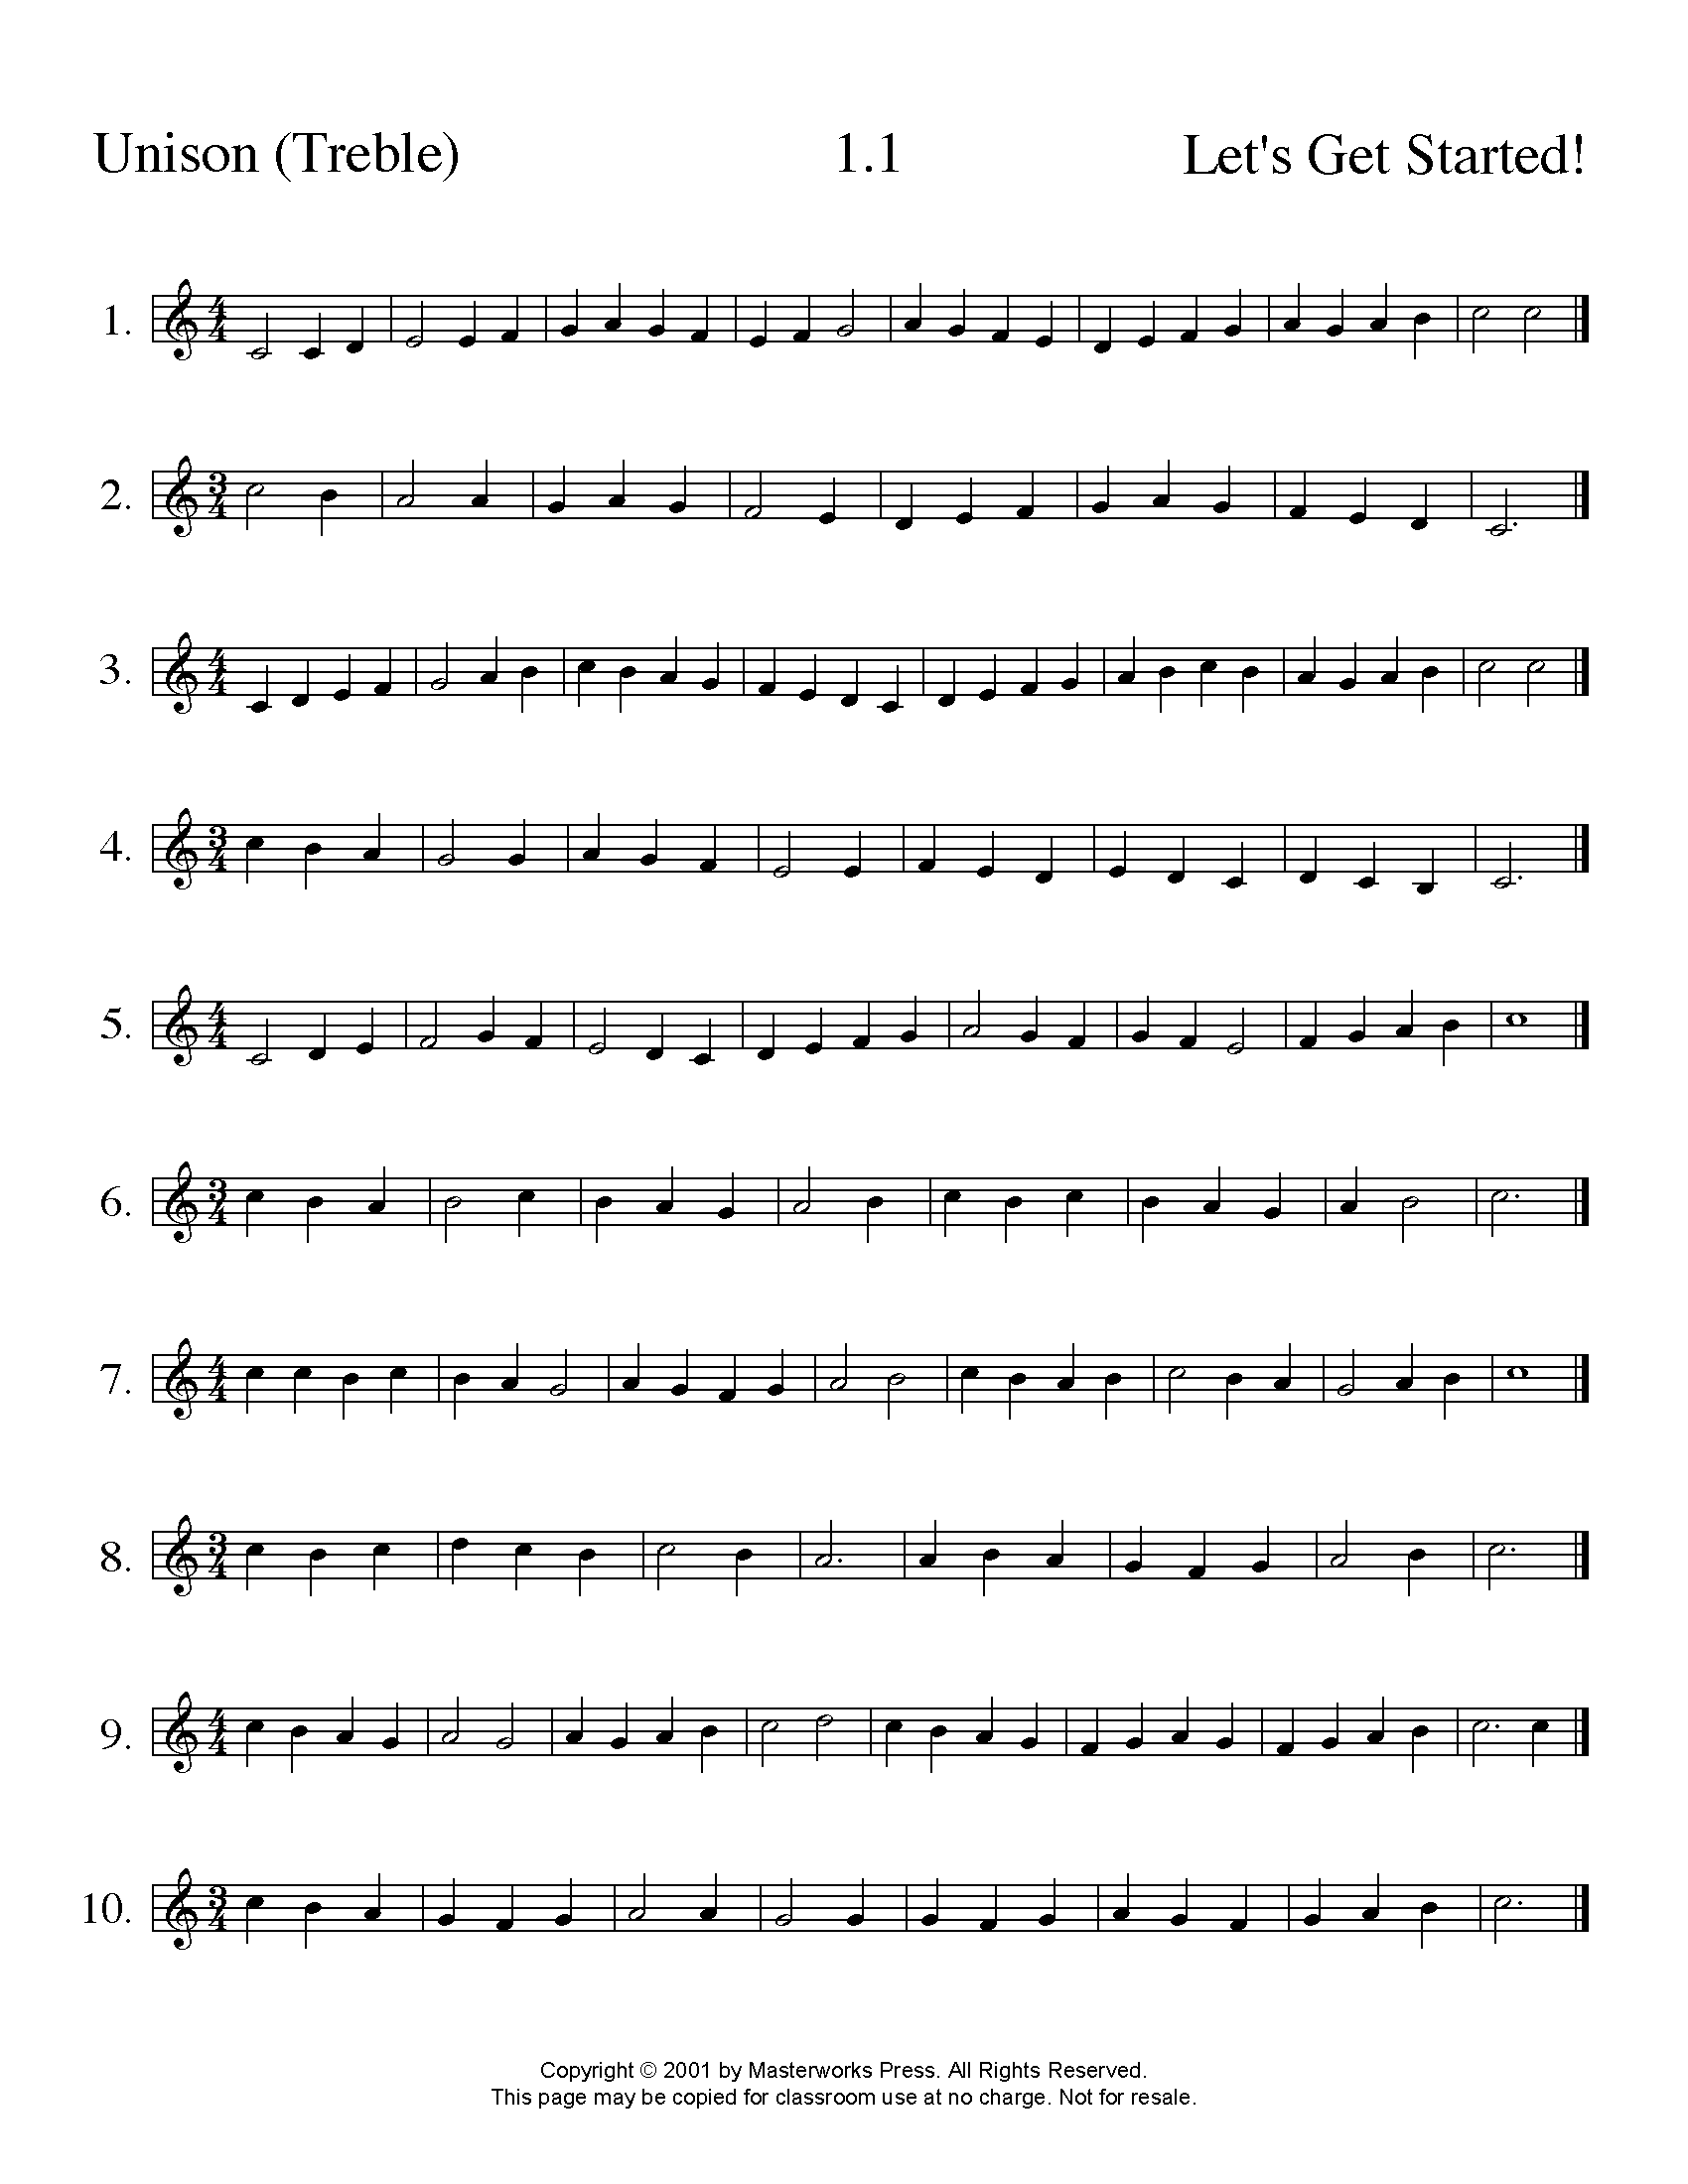 how to sing a very long note